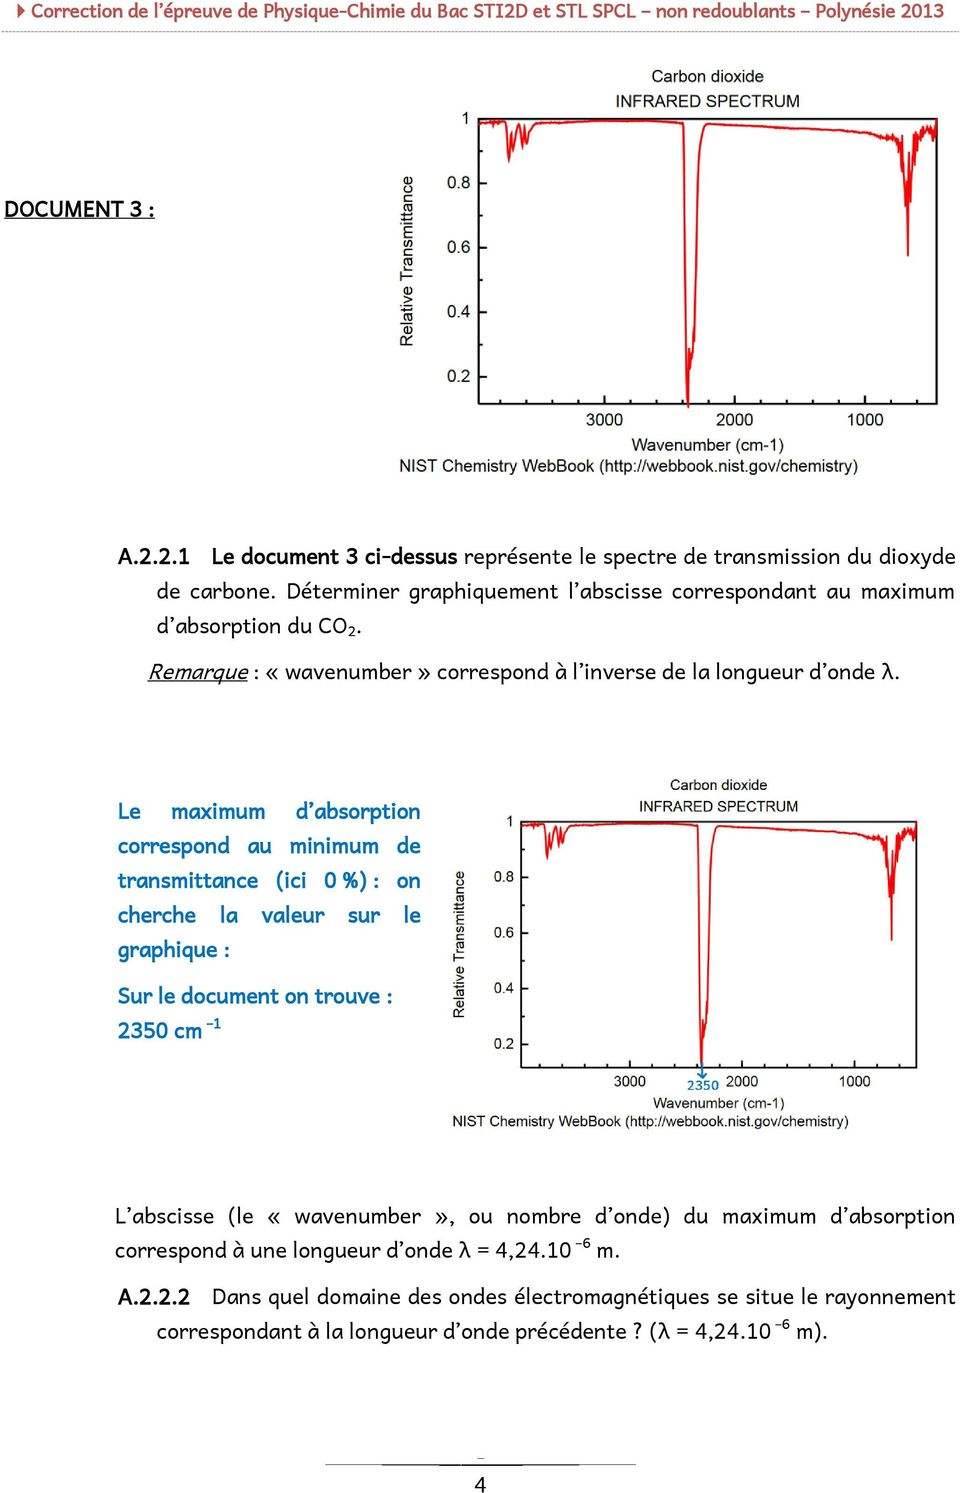 Le maximum d absorption correspond au minimum de transmittance (ici 0 %) : on cherche la valeur sur le graphique : Sur le document on trouve : 2350 cm 1 L abscisse (le